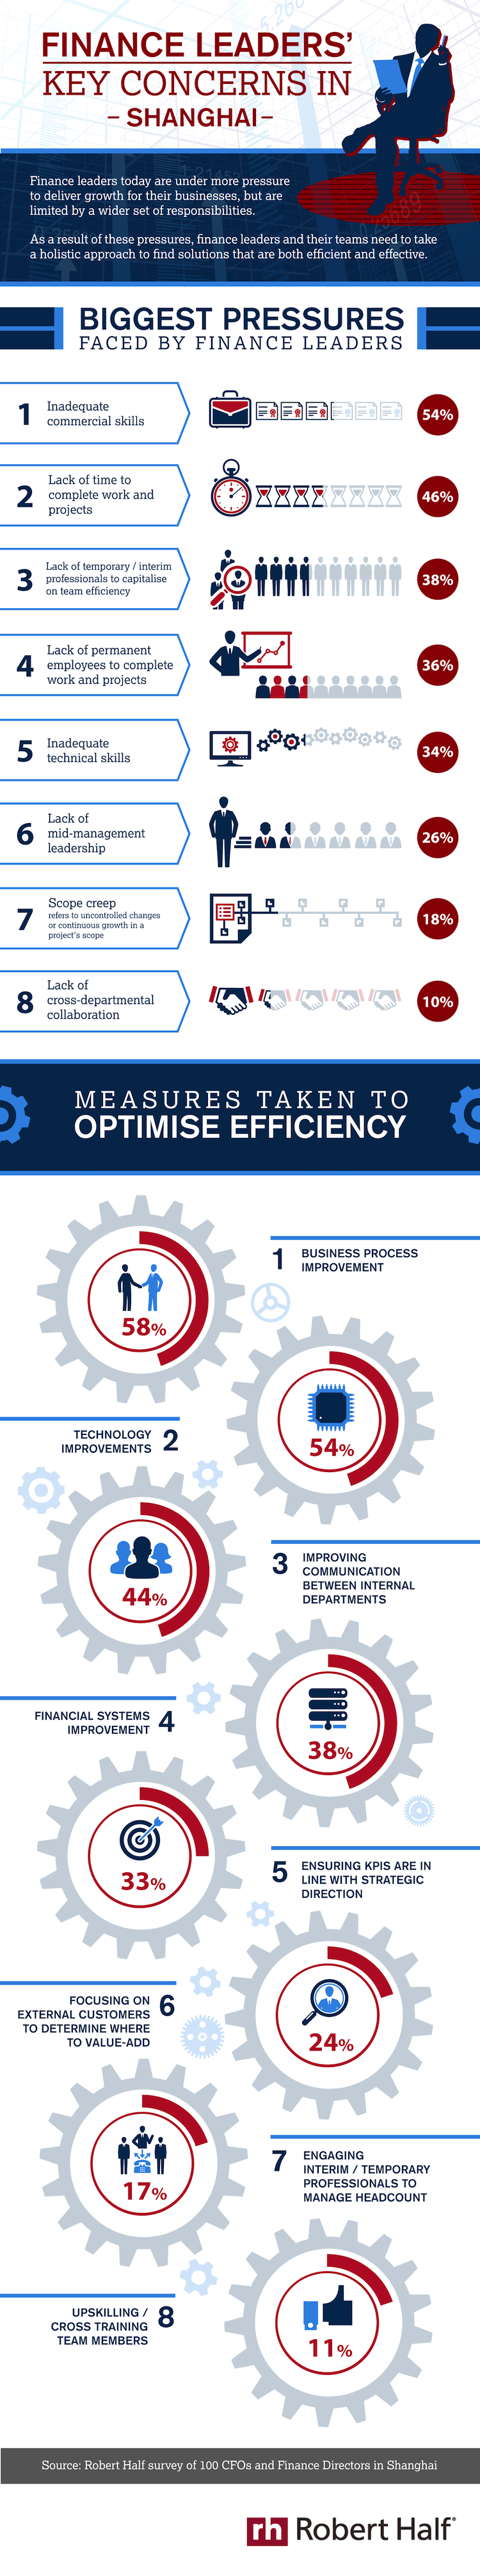 Infographic: Top Concerns and Priorities on the Minds of Today's CFOs